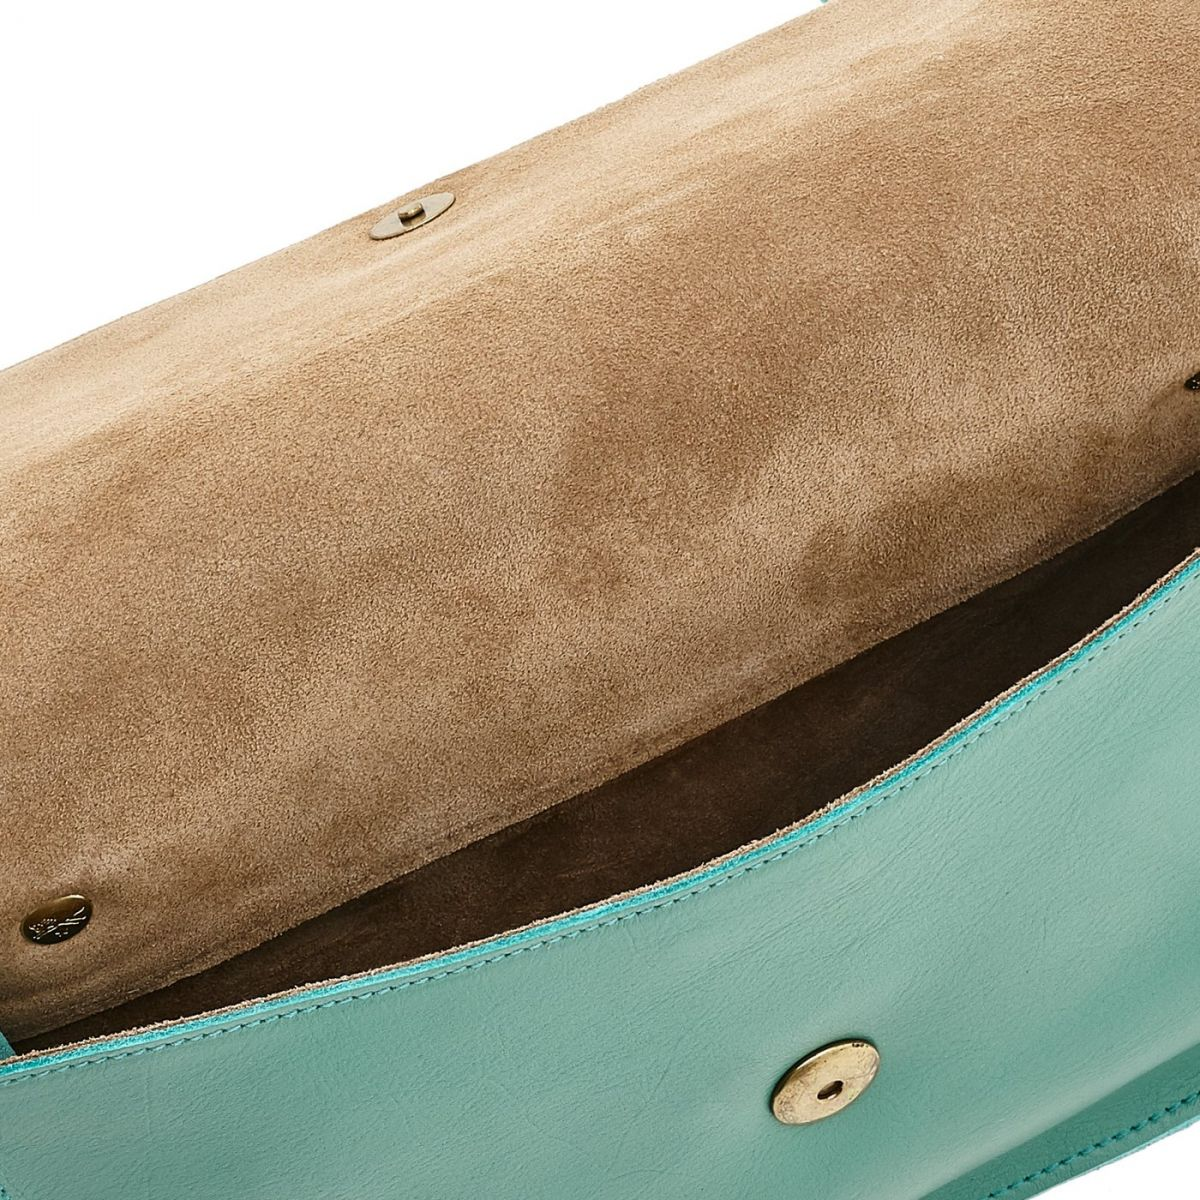 Women's Crossbody Bag Salina in Cowhide Leather BCR173 color Milk / Mint | Details